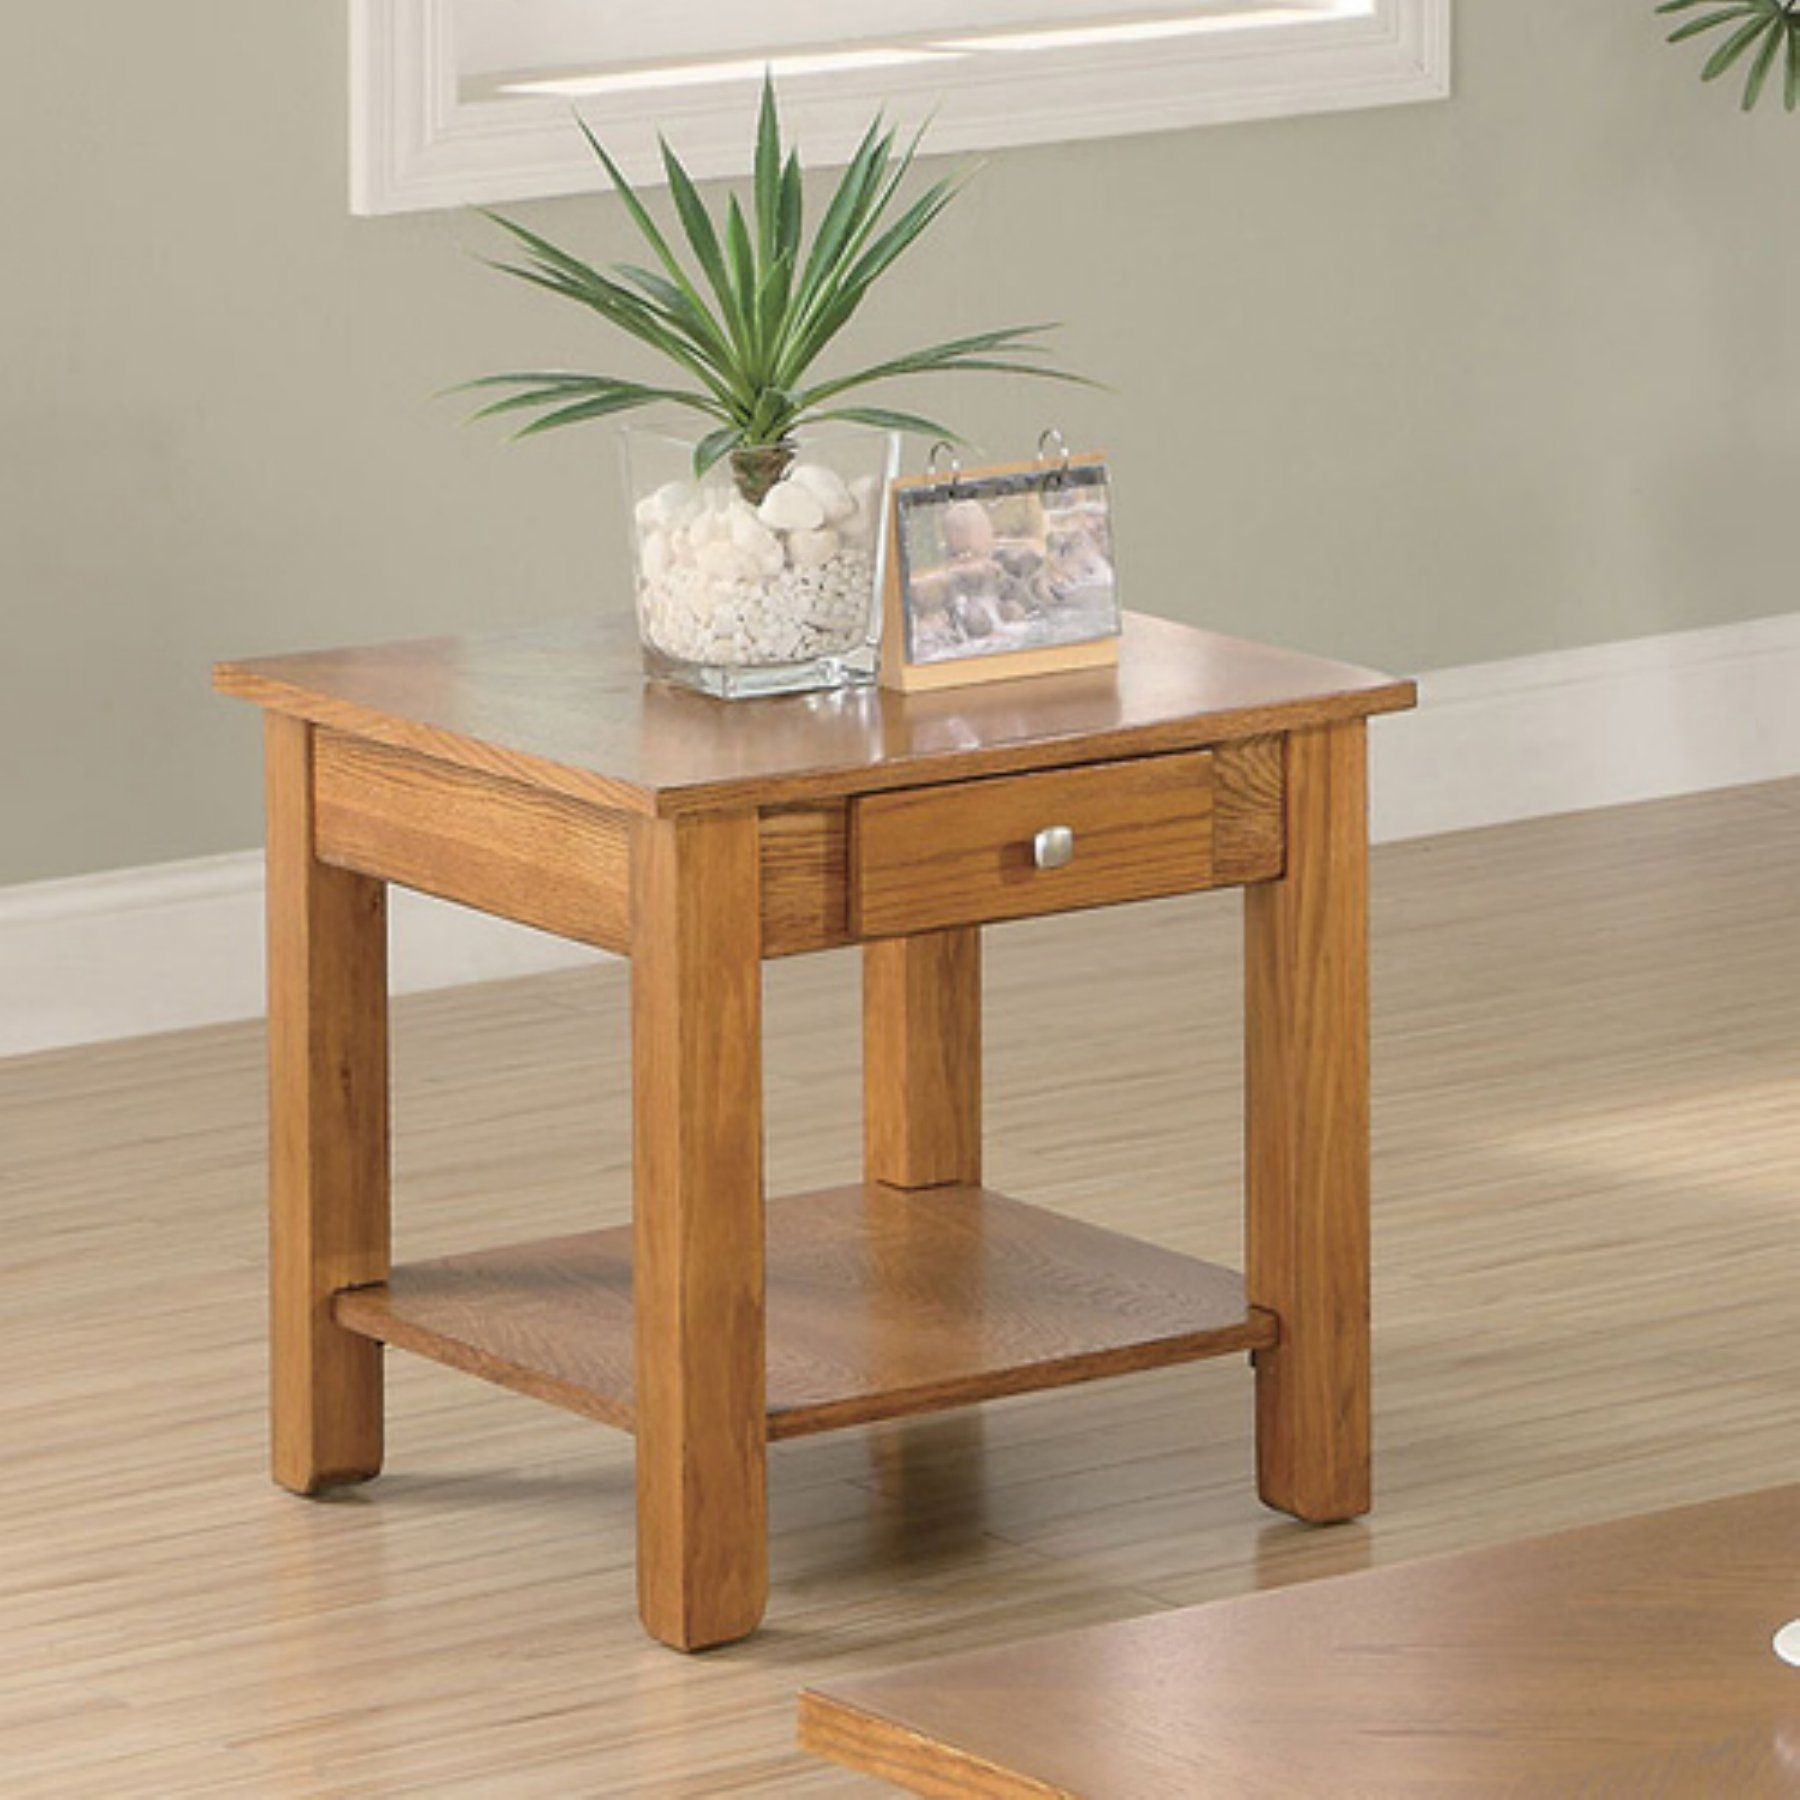 Oak End Tables With Drawers Foter